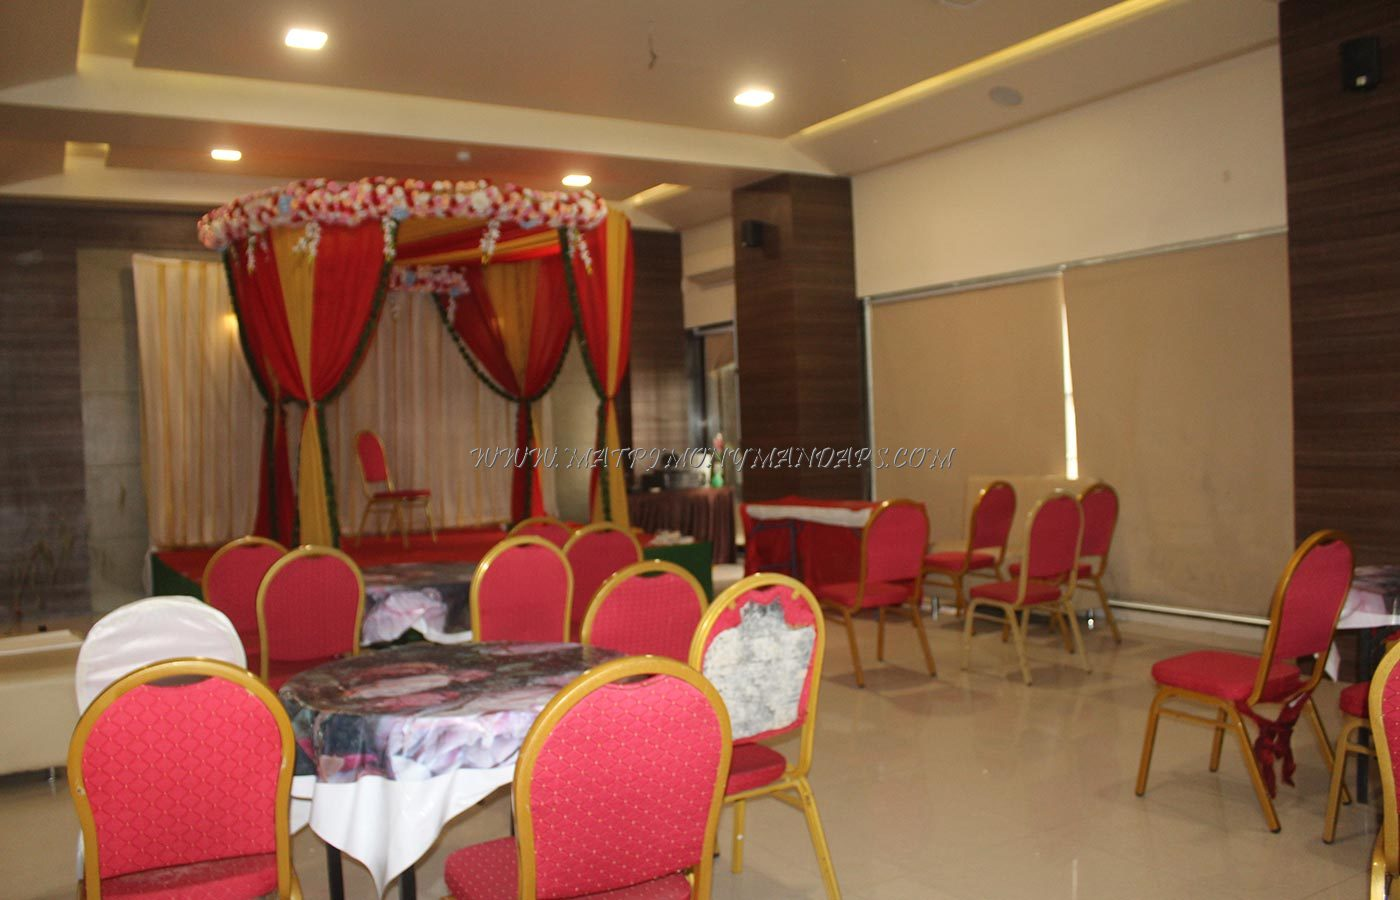 Find More Banquet Halls in Vasai East